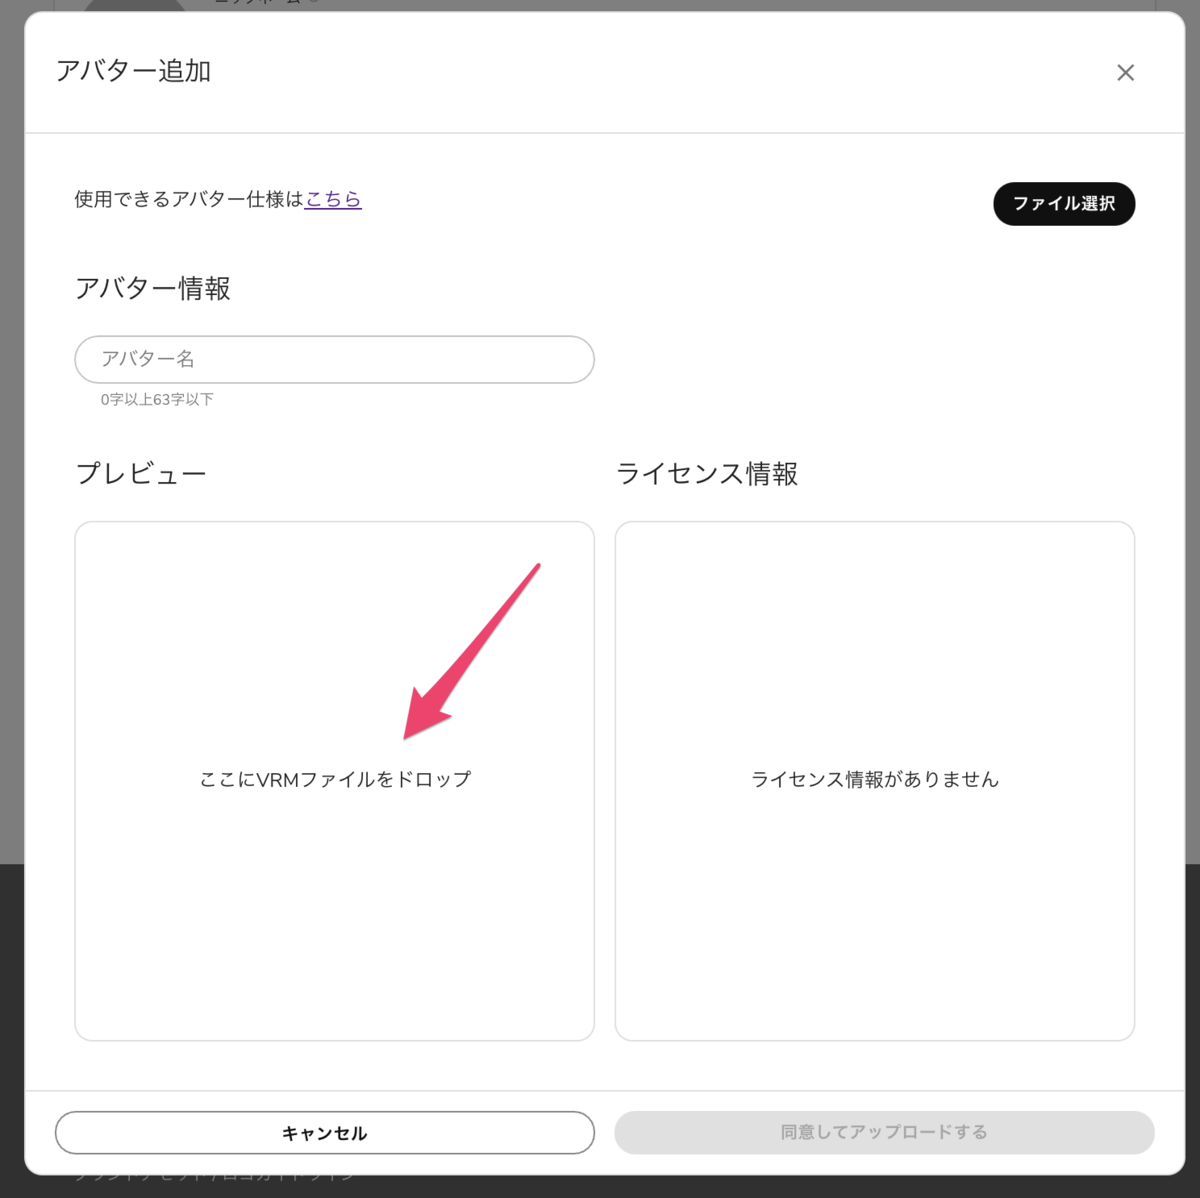 【DMM VR Connect】VRMを表示させる方法_9